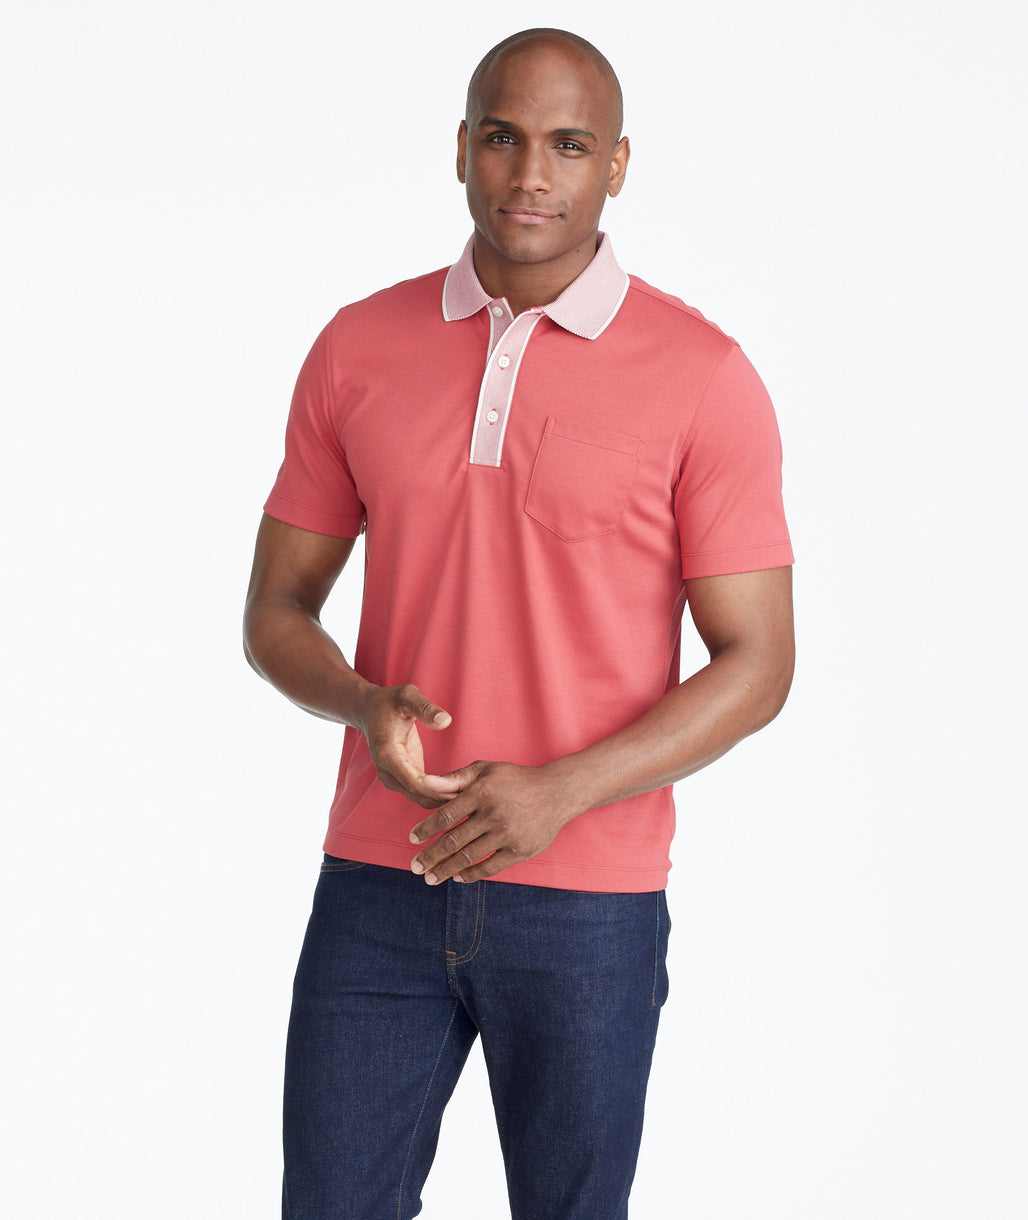 Model wearing a Red The Wrinkle-Free Polo with Contrast Collar - FINAL SALE